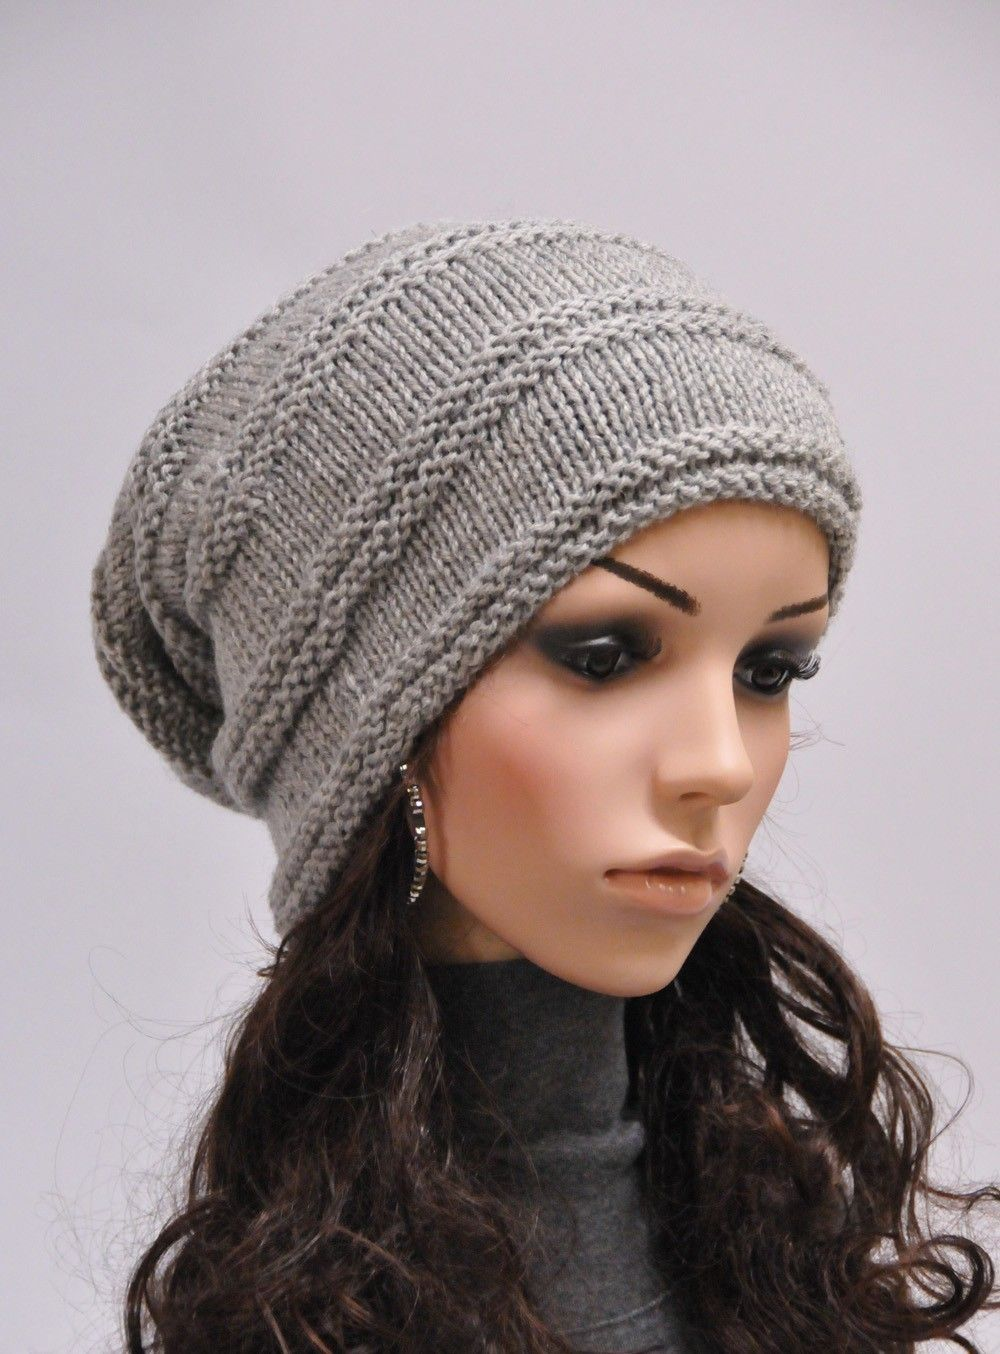 Hand knit wool hat woman winter hat slouchy grey hat - ready to ship ...